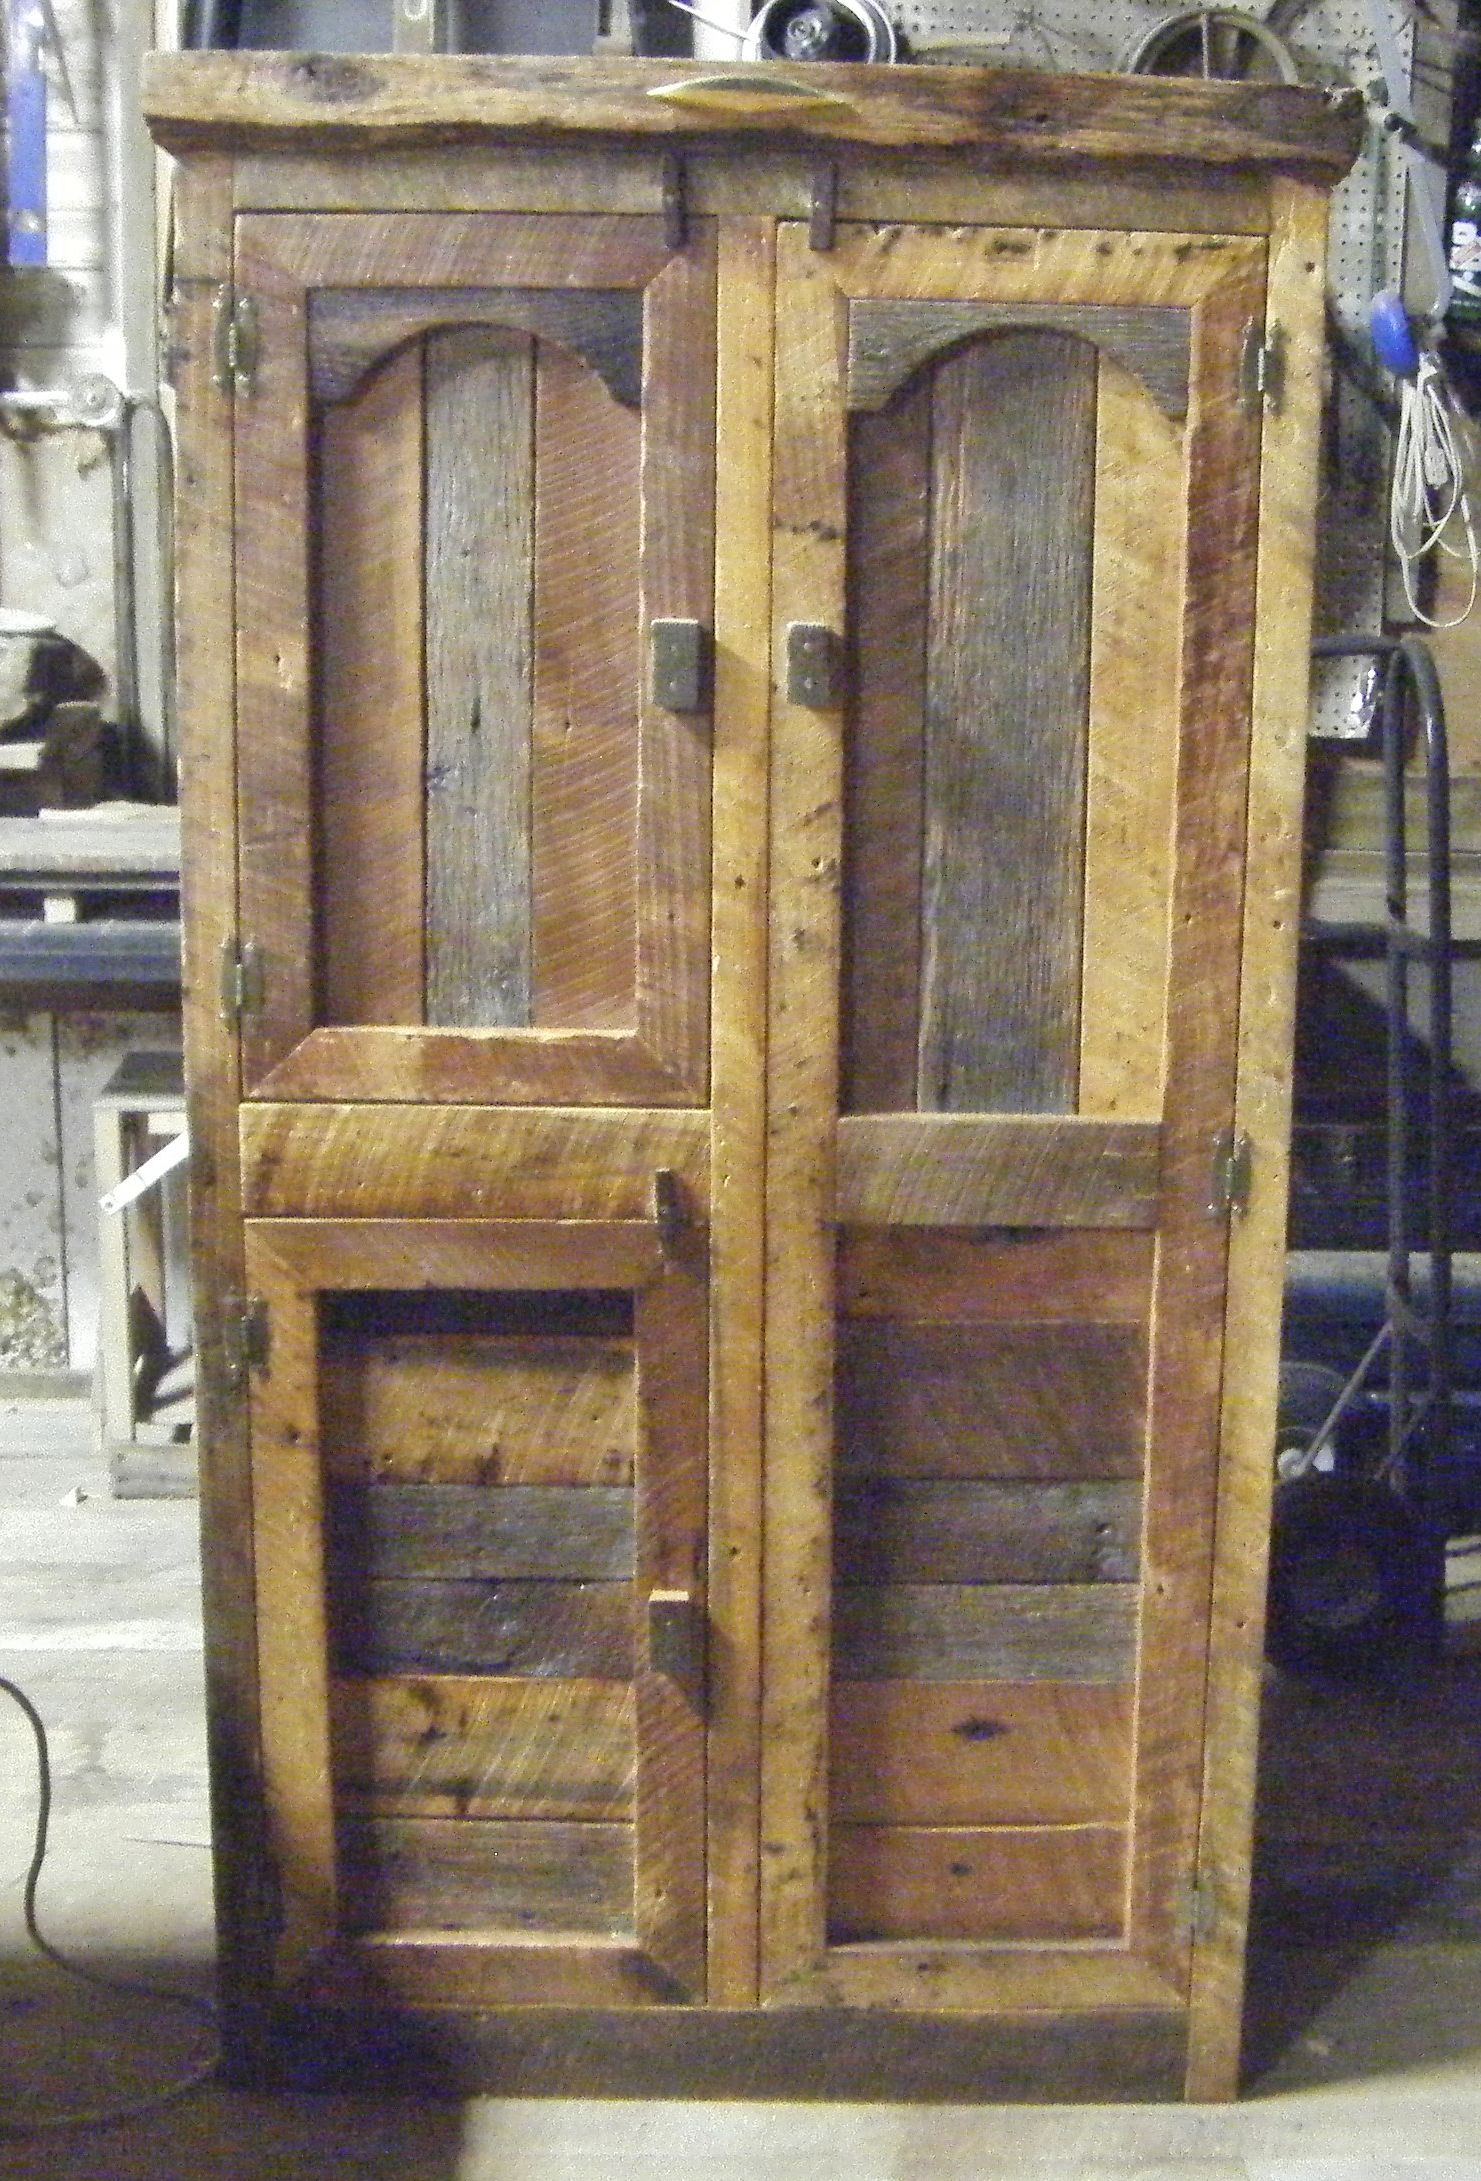 Hunting Cabinet by Barn Wood Furniture. It has a bar for clothes ...